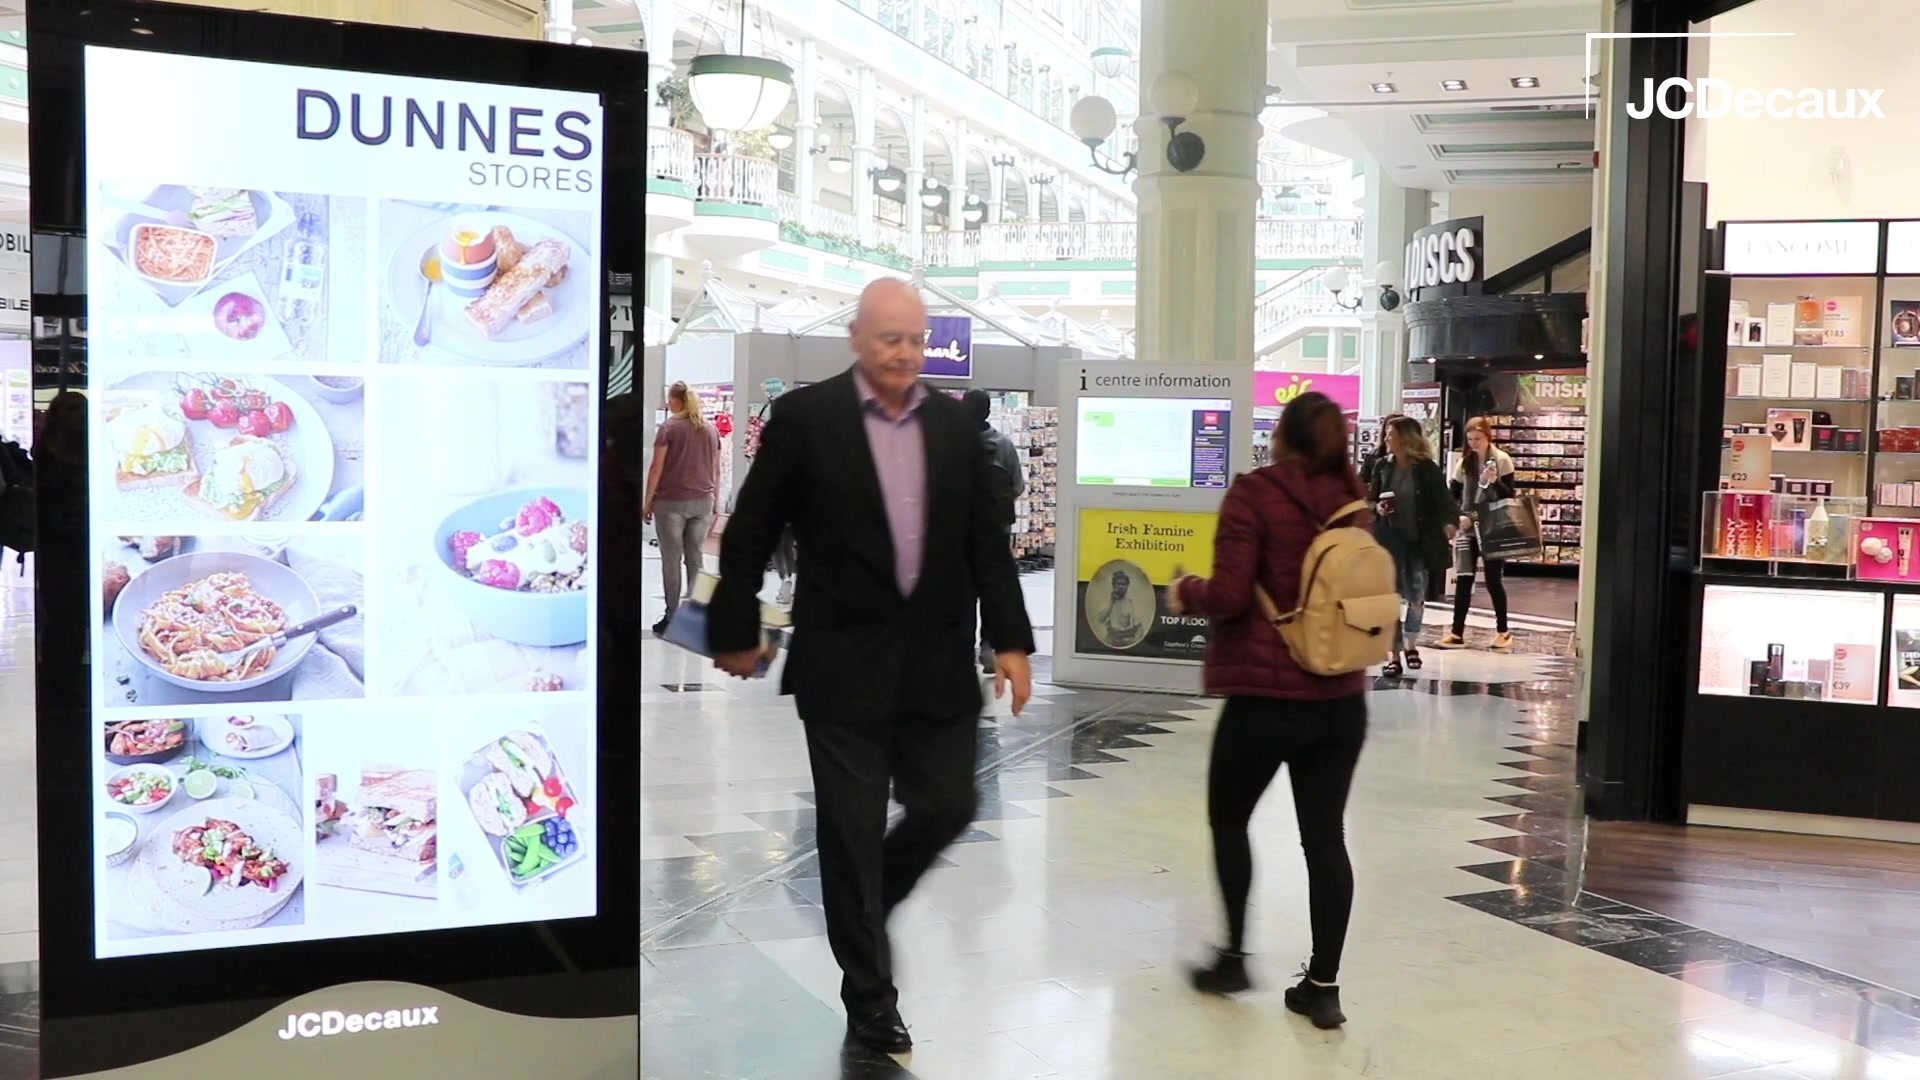 JCDecaux iVision Network